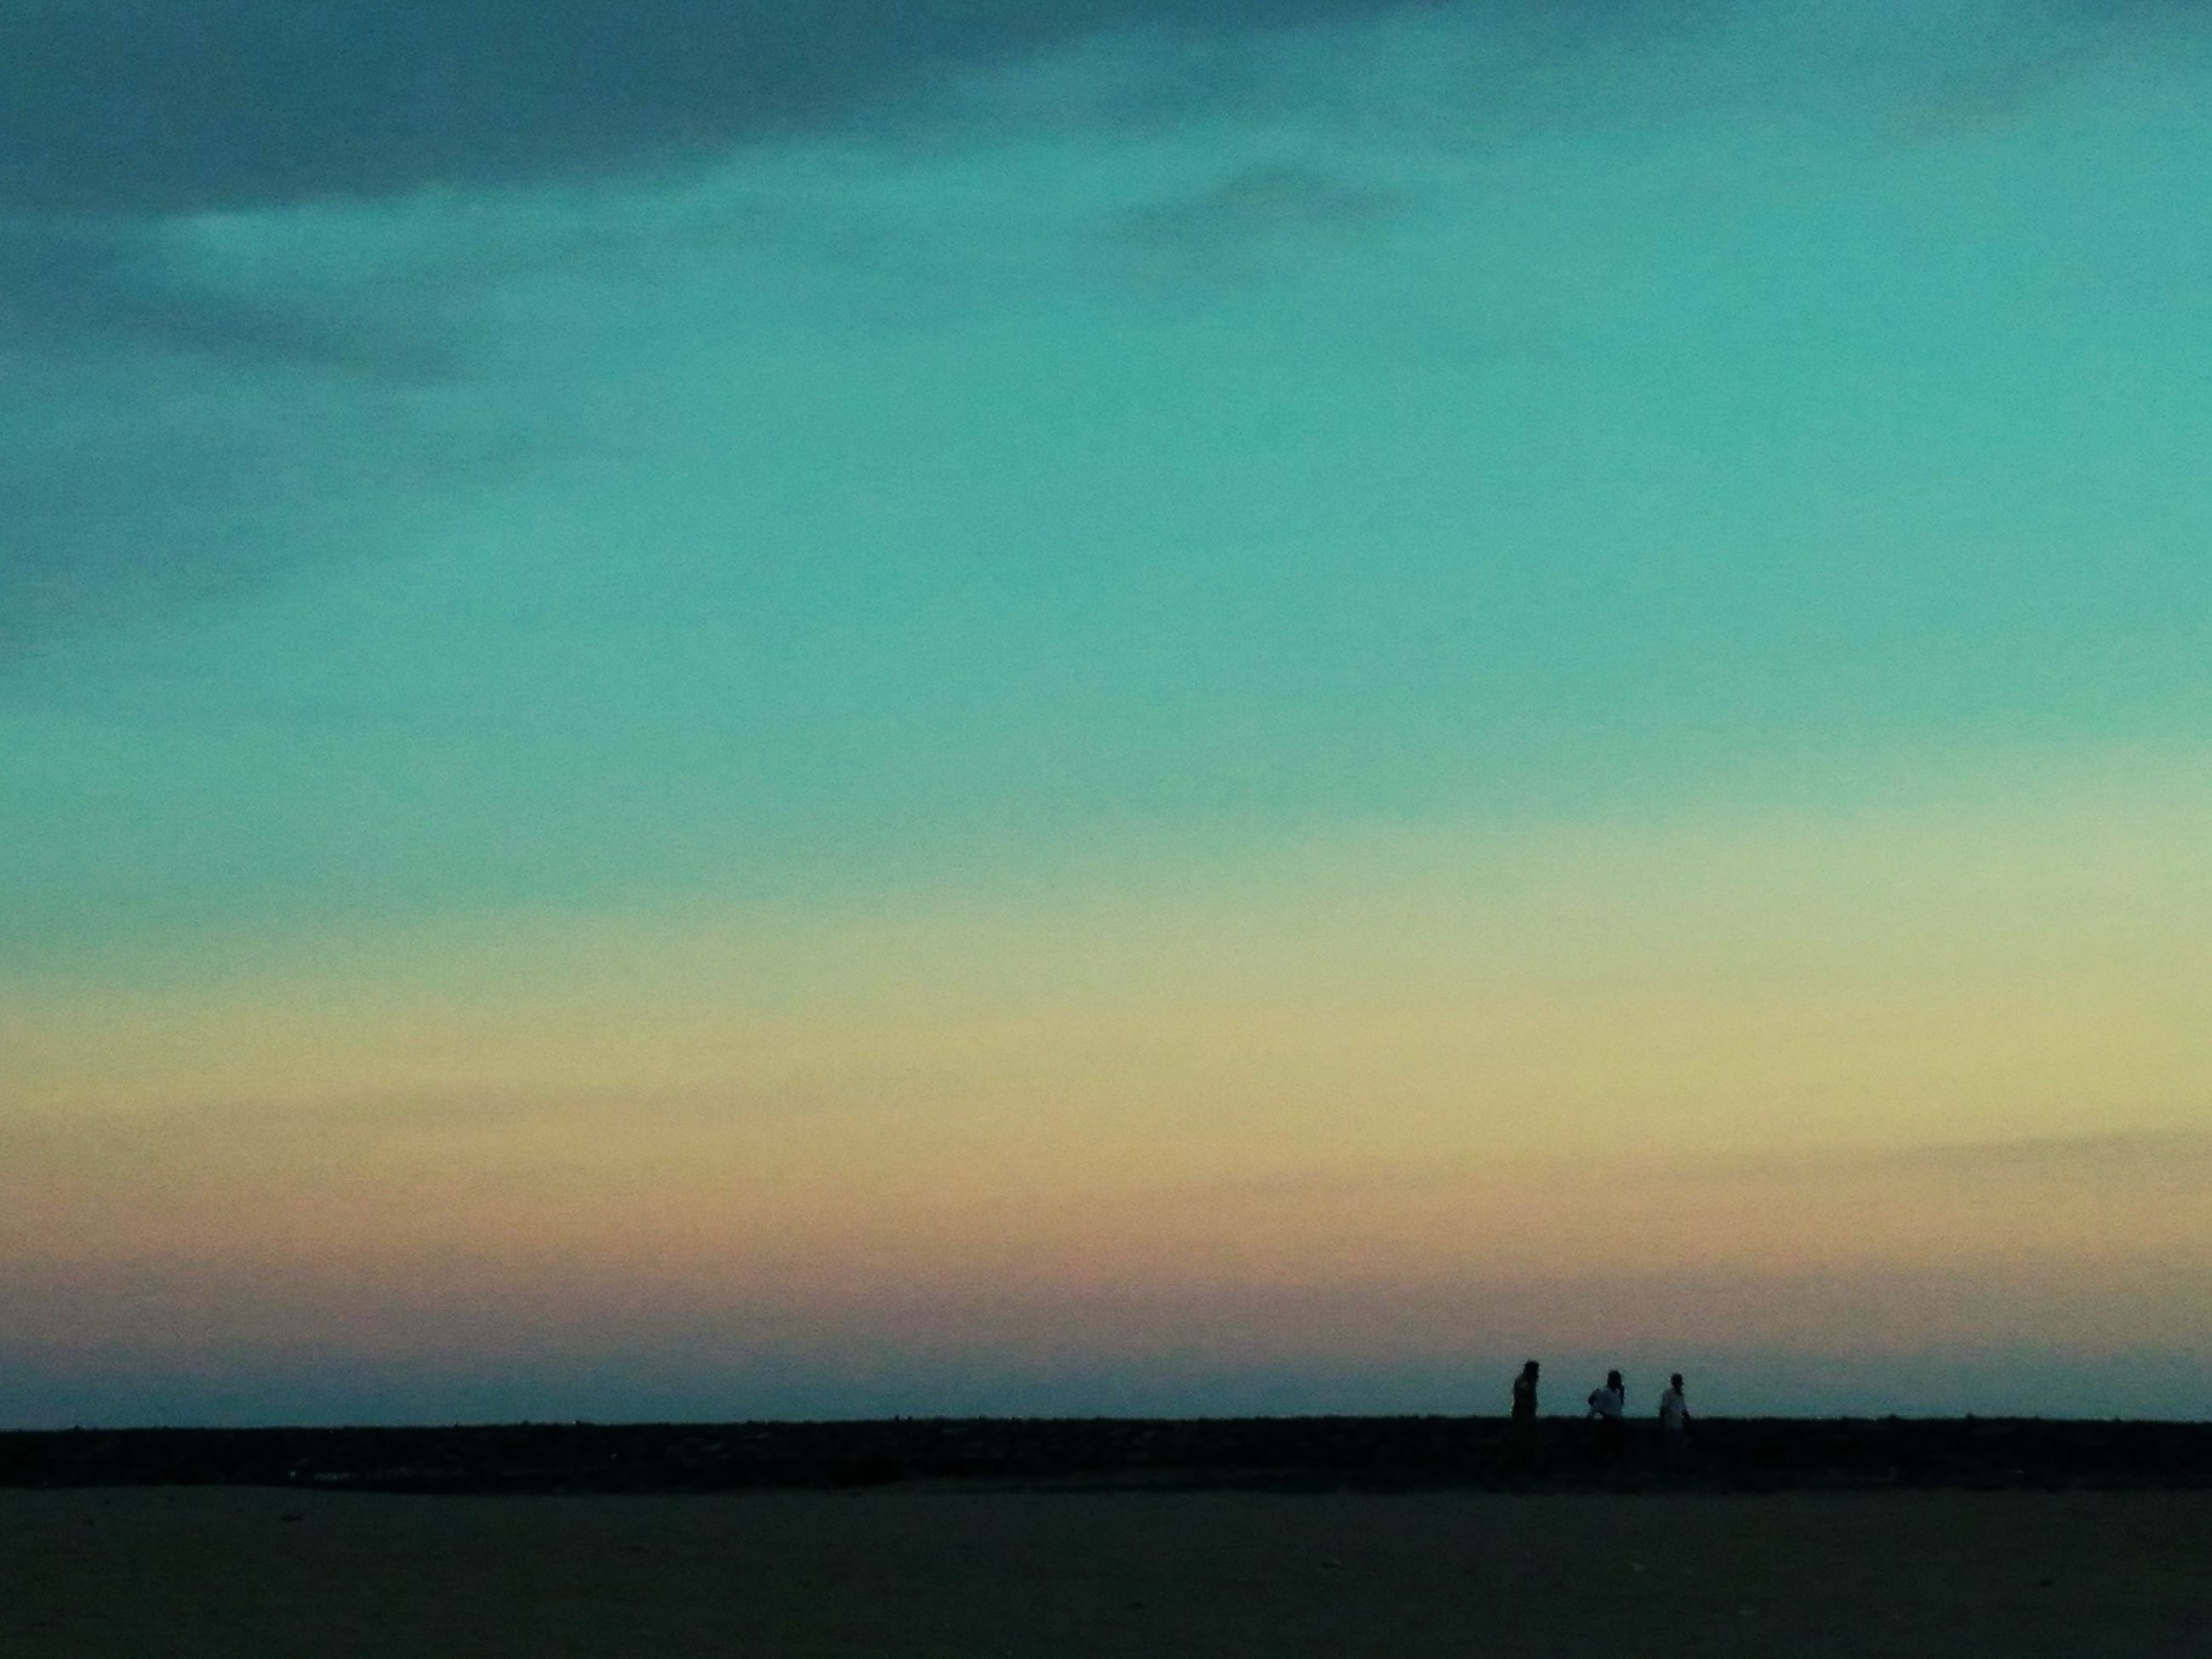 silhouette, sunset, sea, tranquil scene, scenics, tranquility, sky, beauty in nature, water, nature, horizon over water, copy space, dusk, idyllic, outline, orange color, beach, unrecognizable person, outdoors